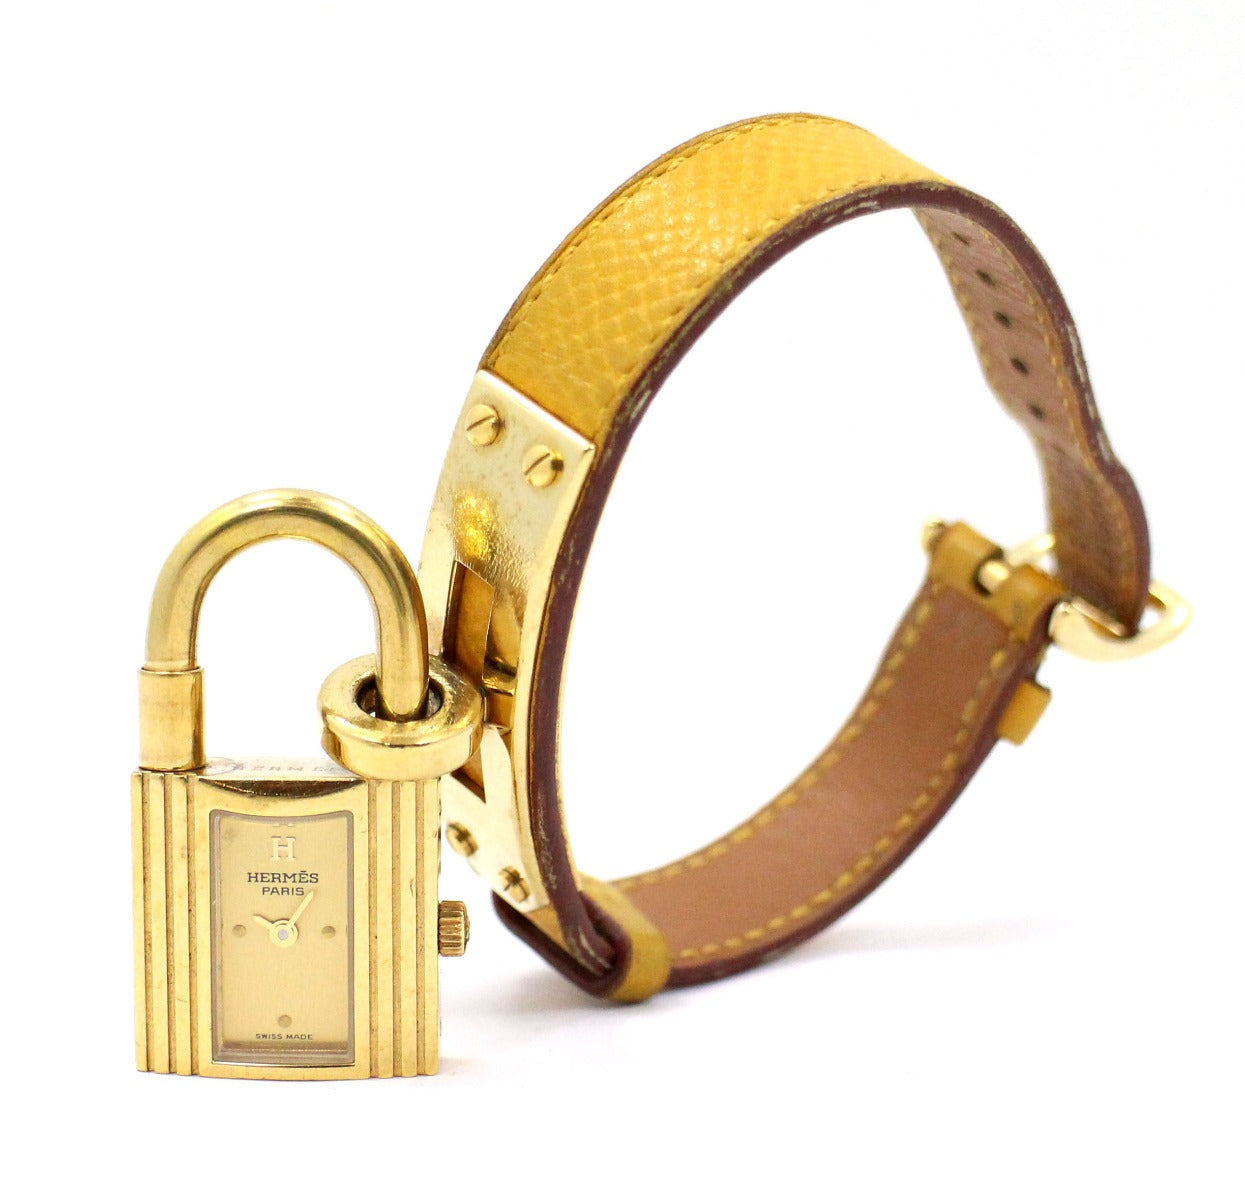 HERMES KELLY WATCH Yellow CALFSKIN STRAP